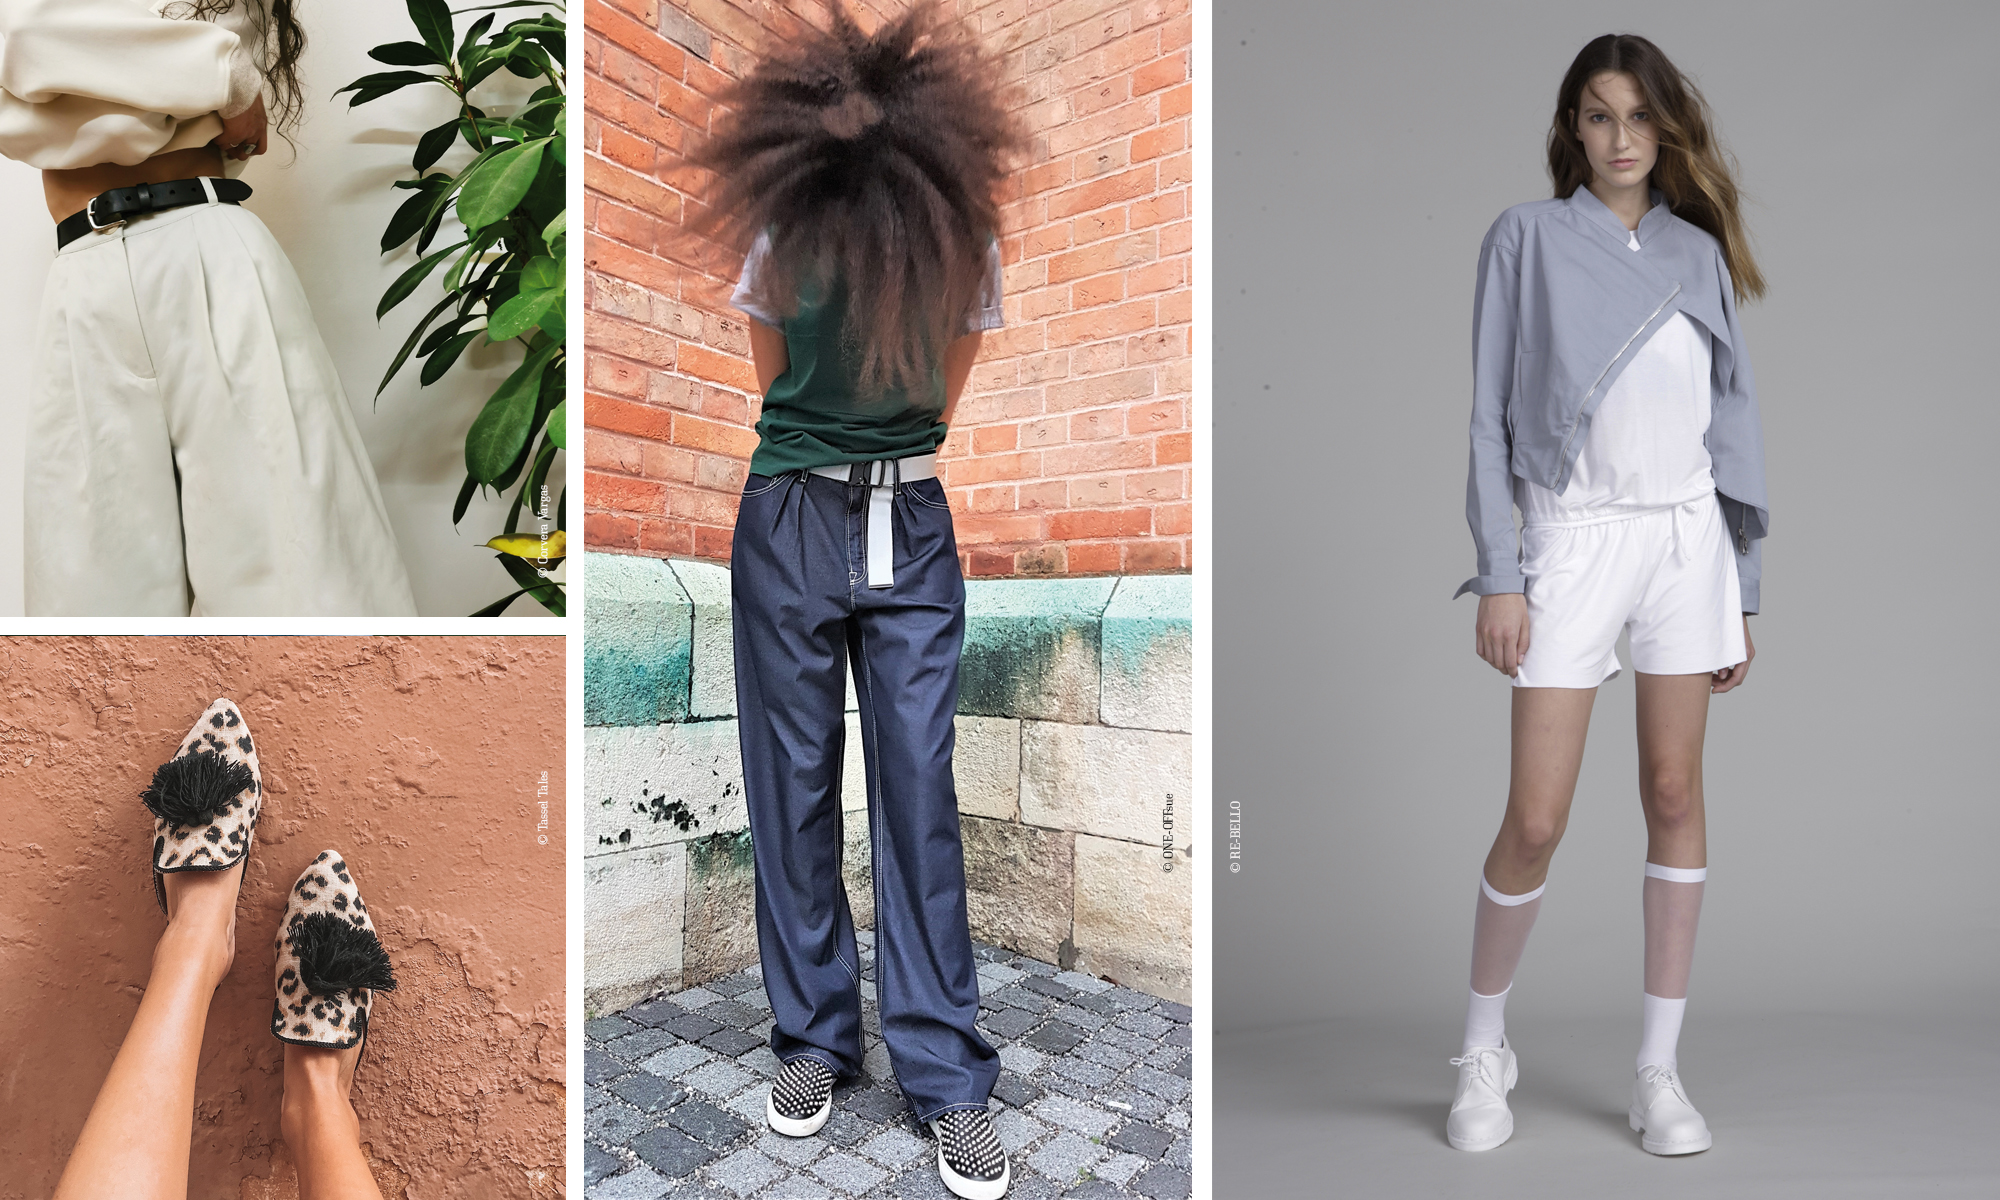 VIRTUAL GREENSTYLE - Home of SUSTAINABLE FASHION